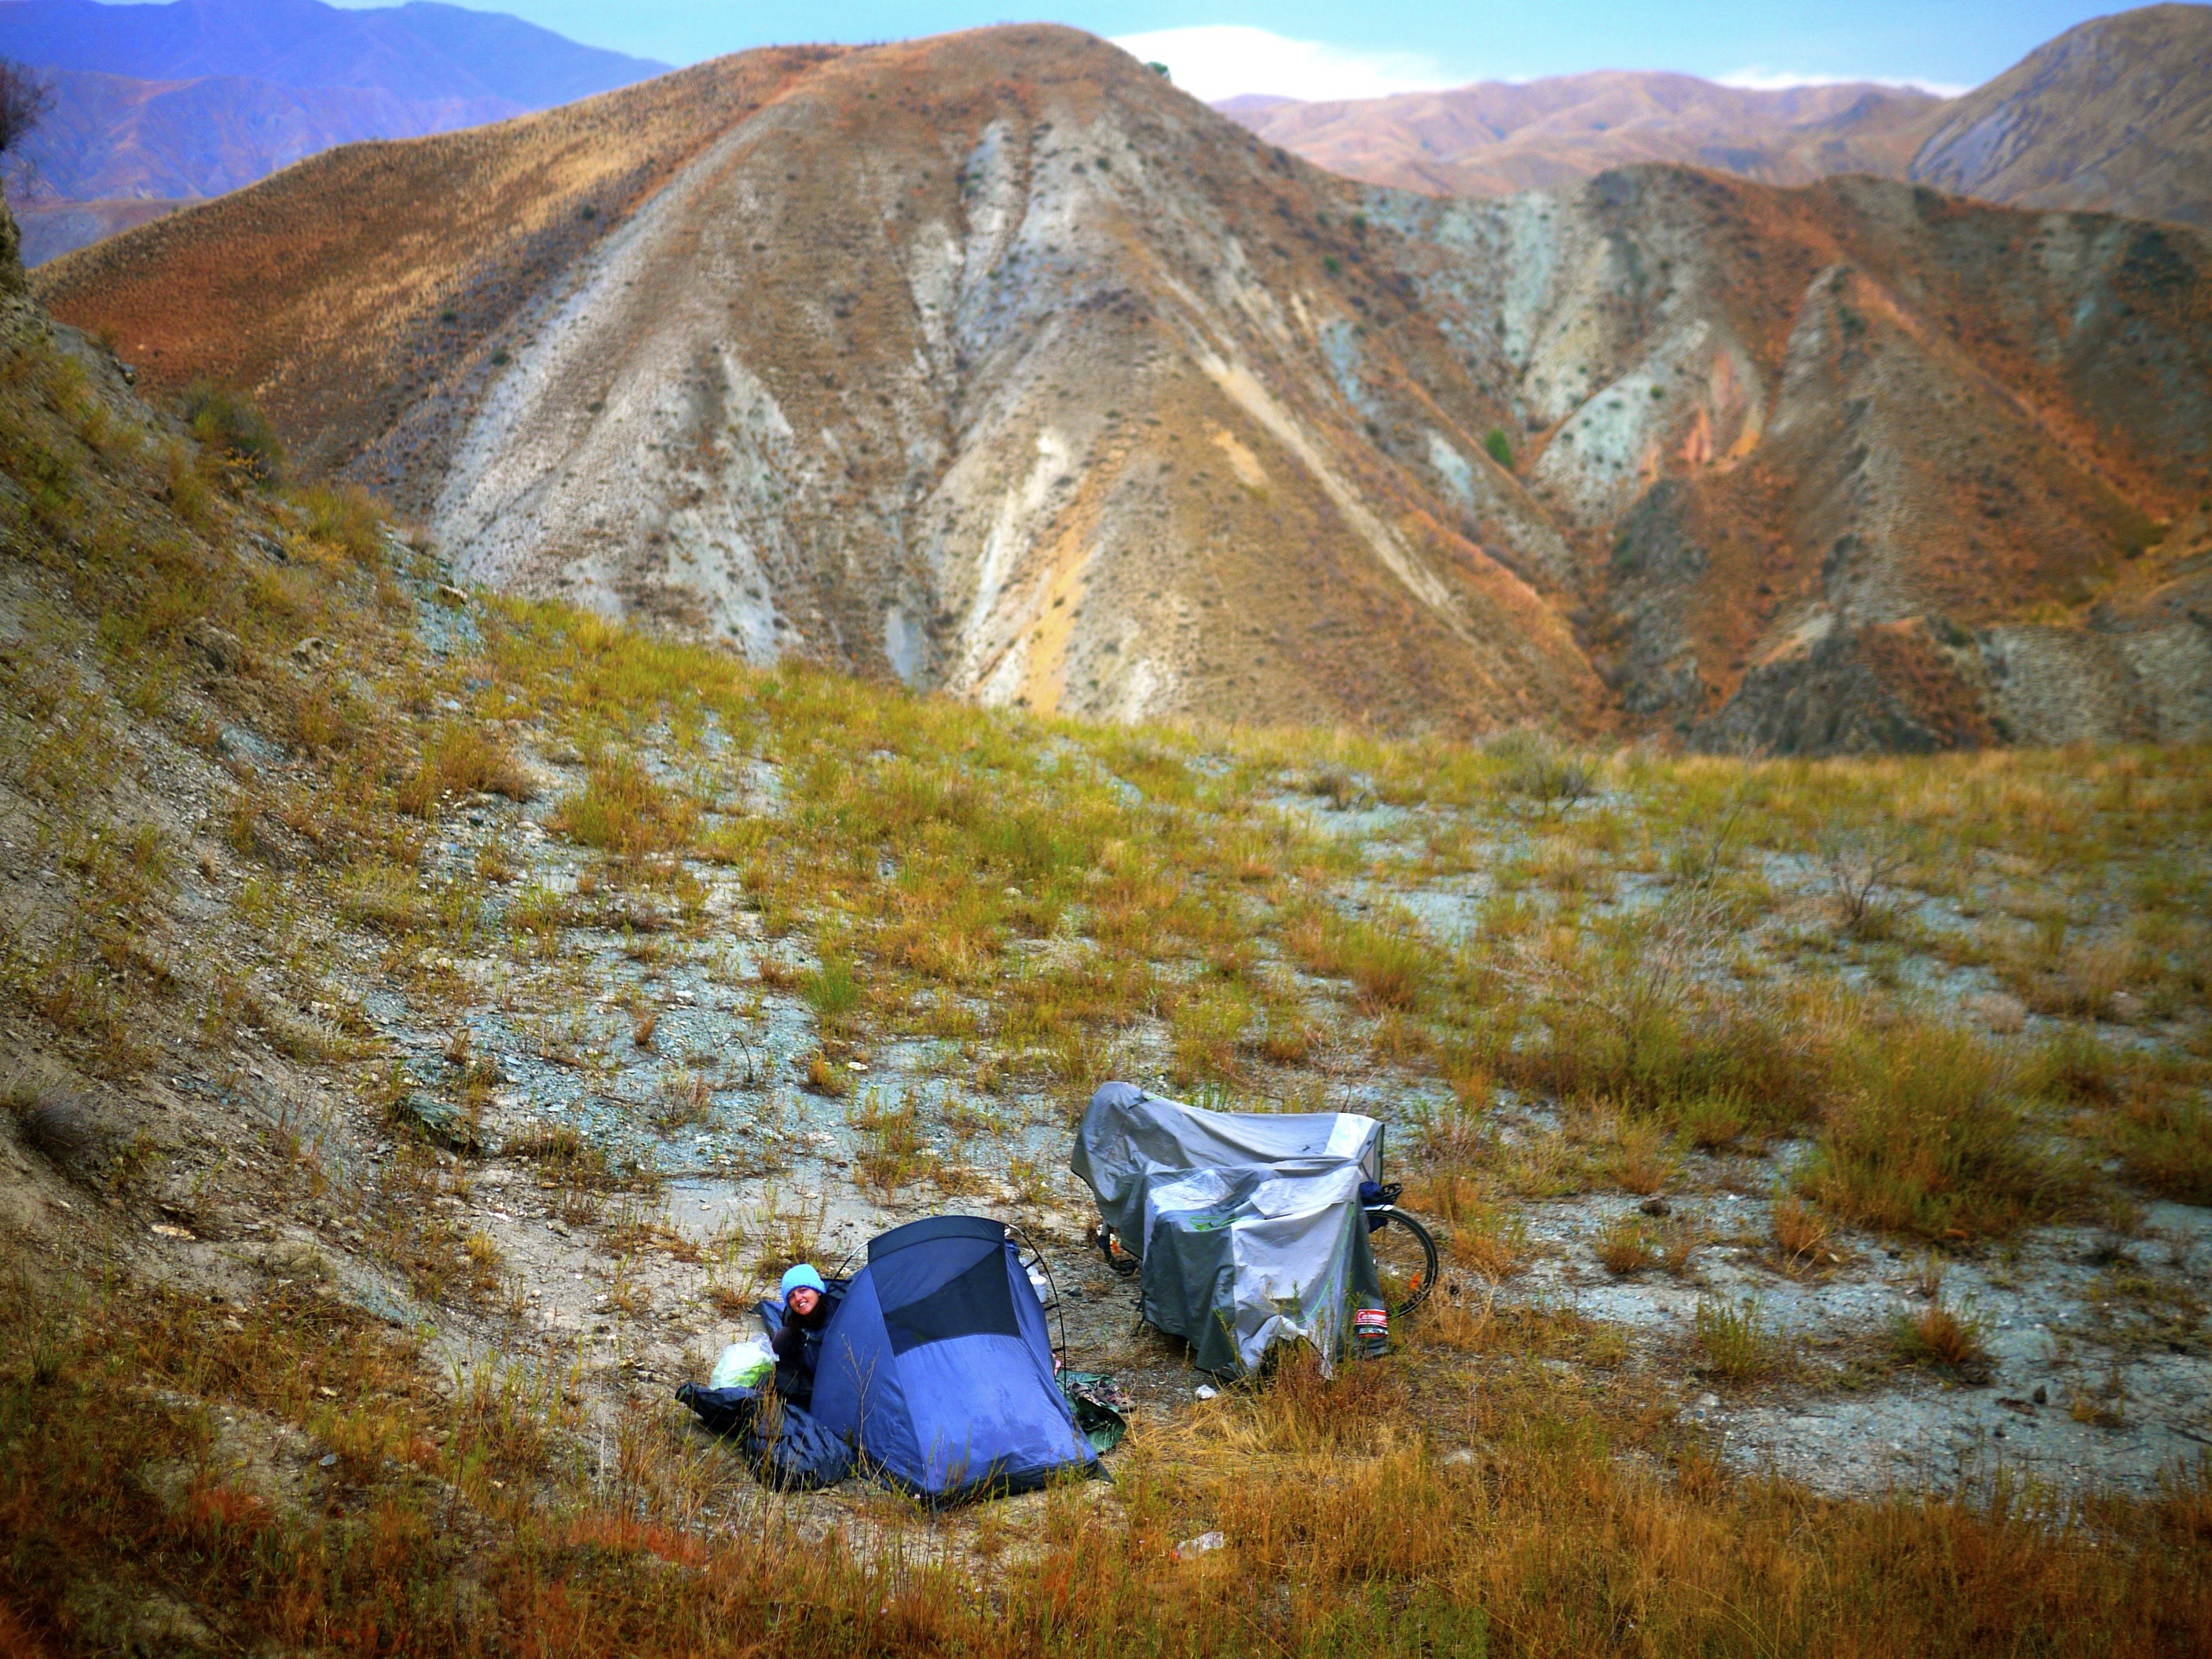 wicked camping spot just off the road at the top of a mountain